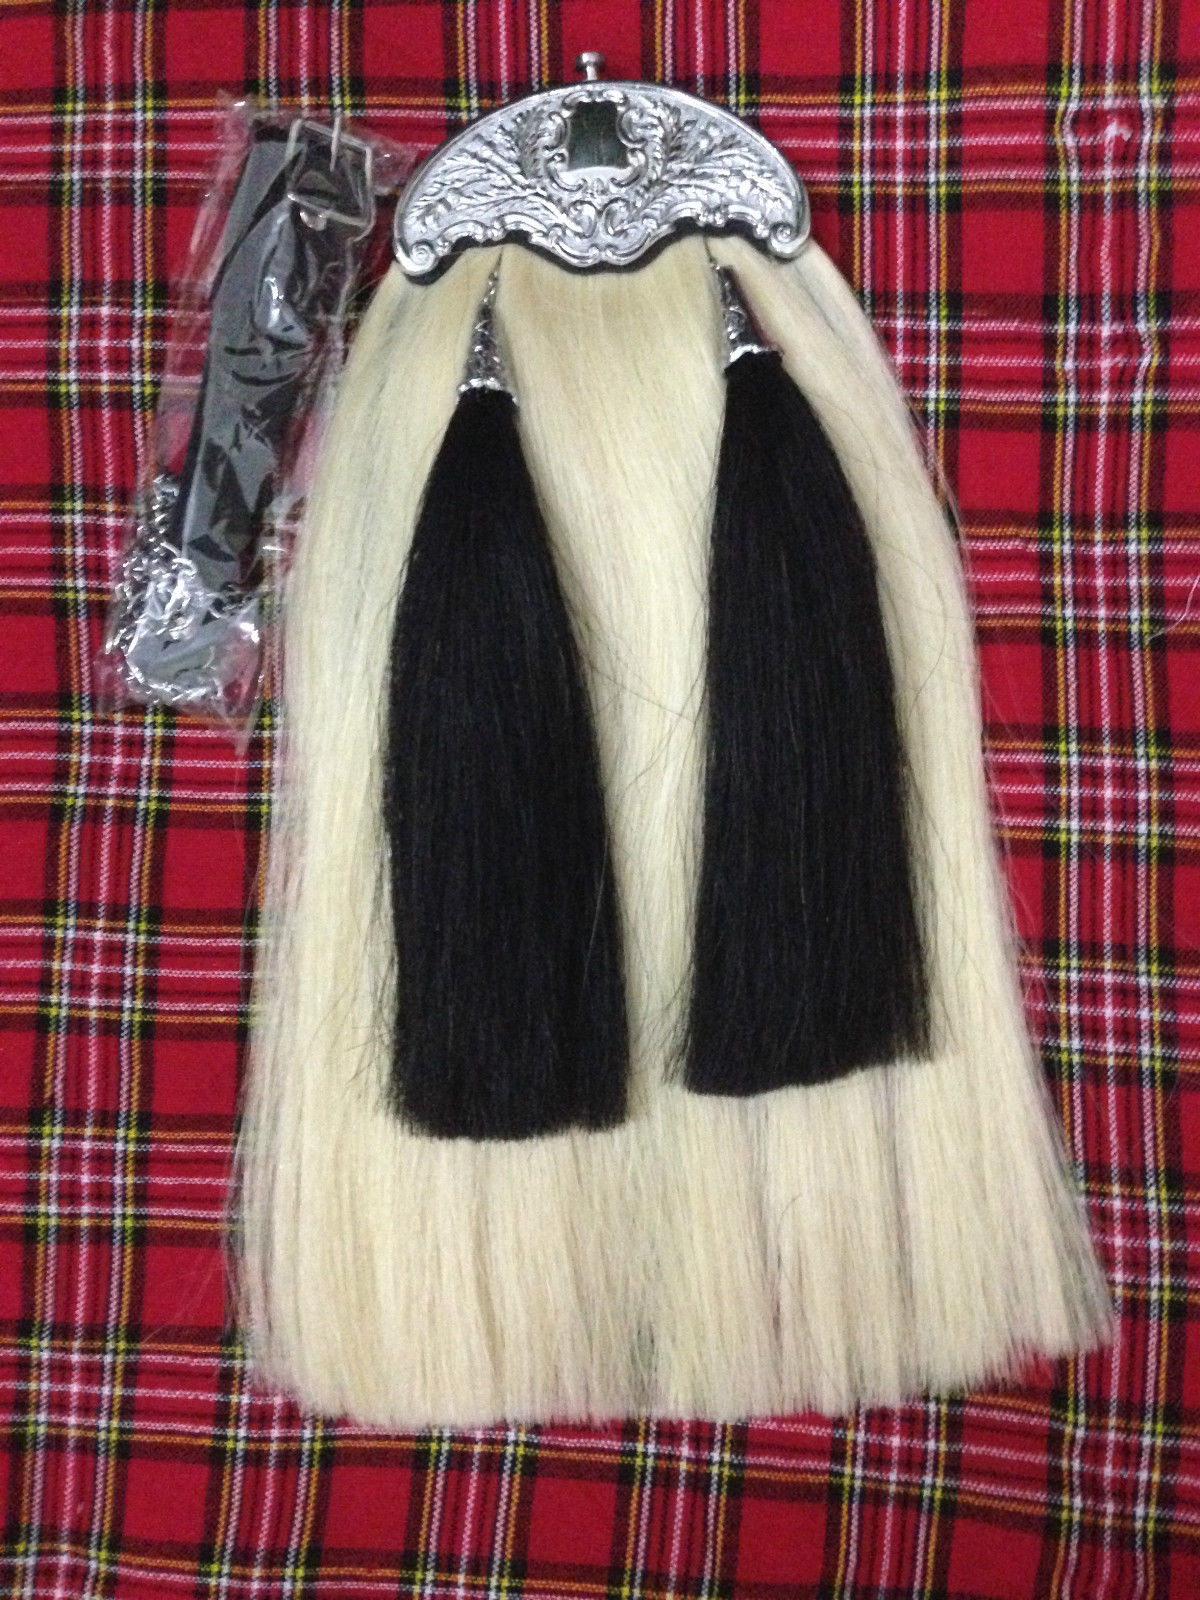 Handmade Original Long Horse Hair Sporran with Two Black Tassels